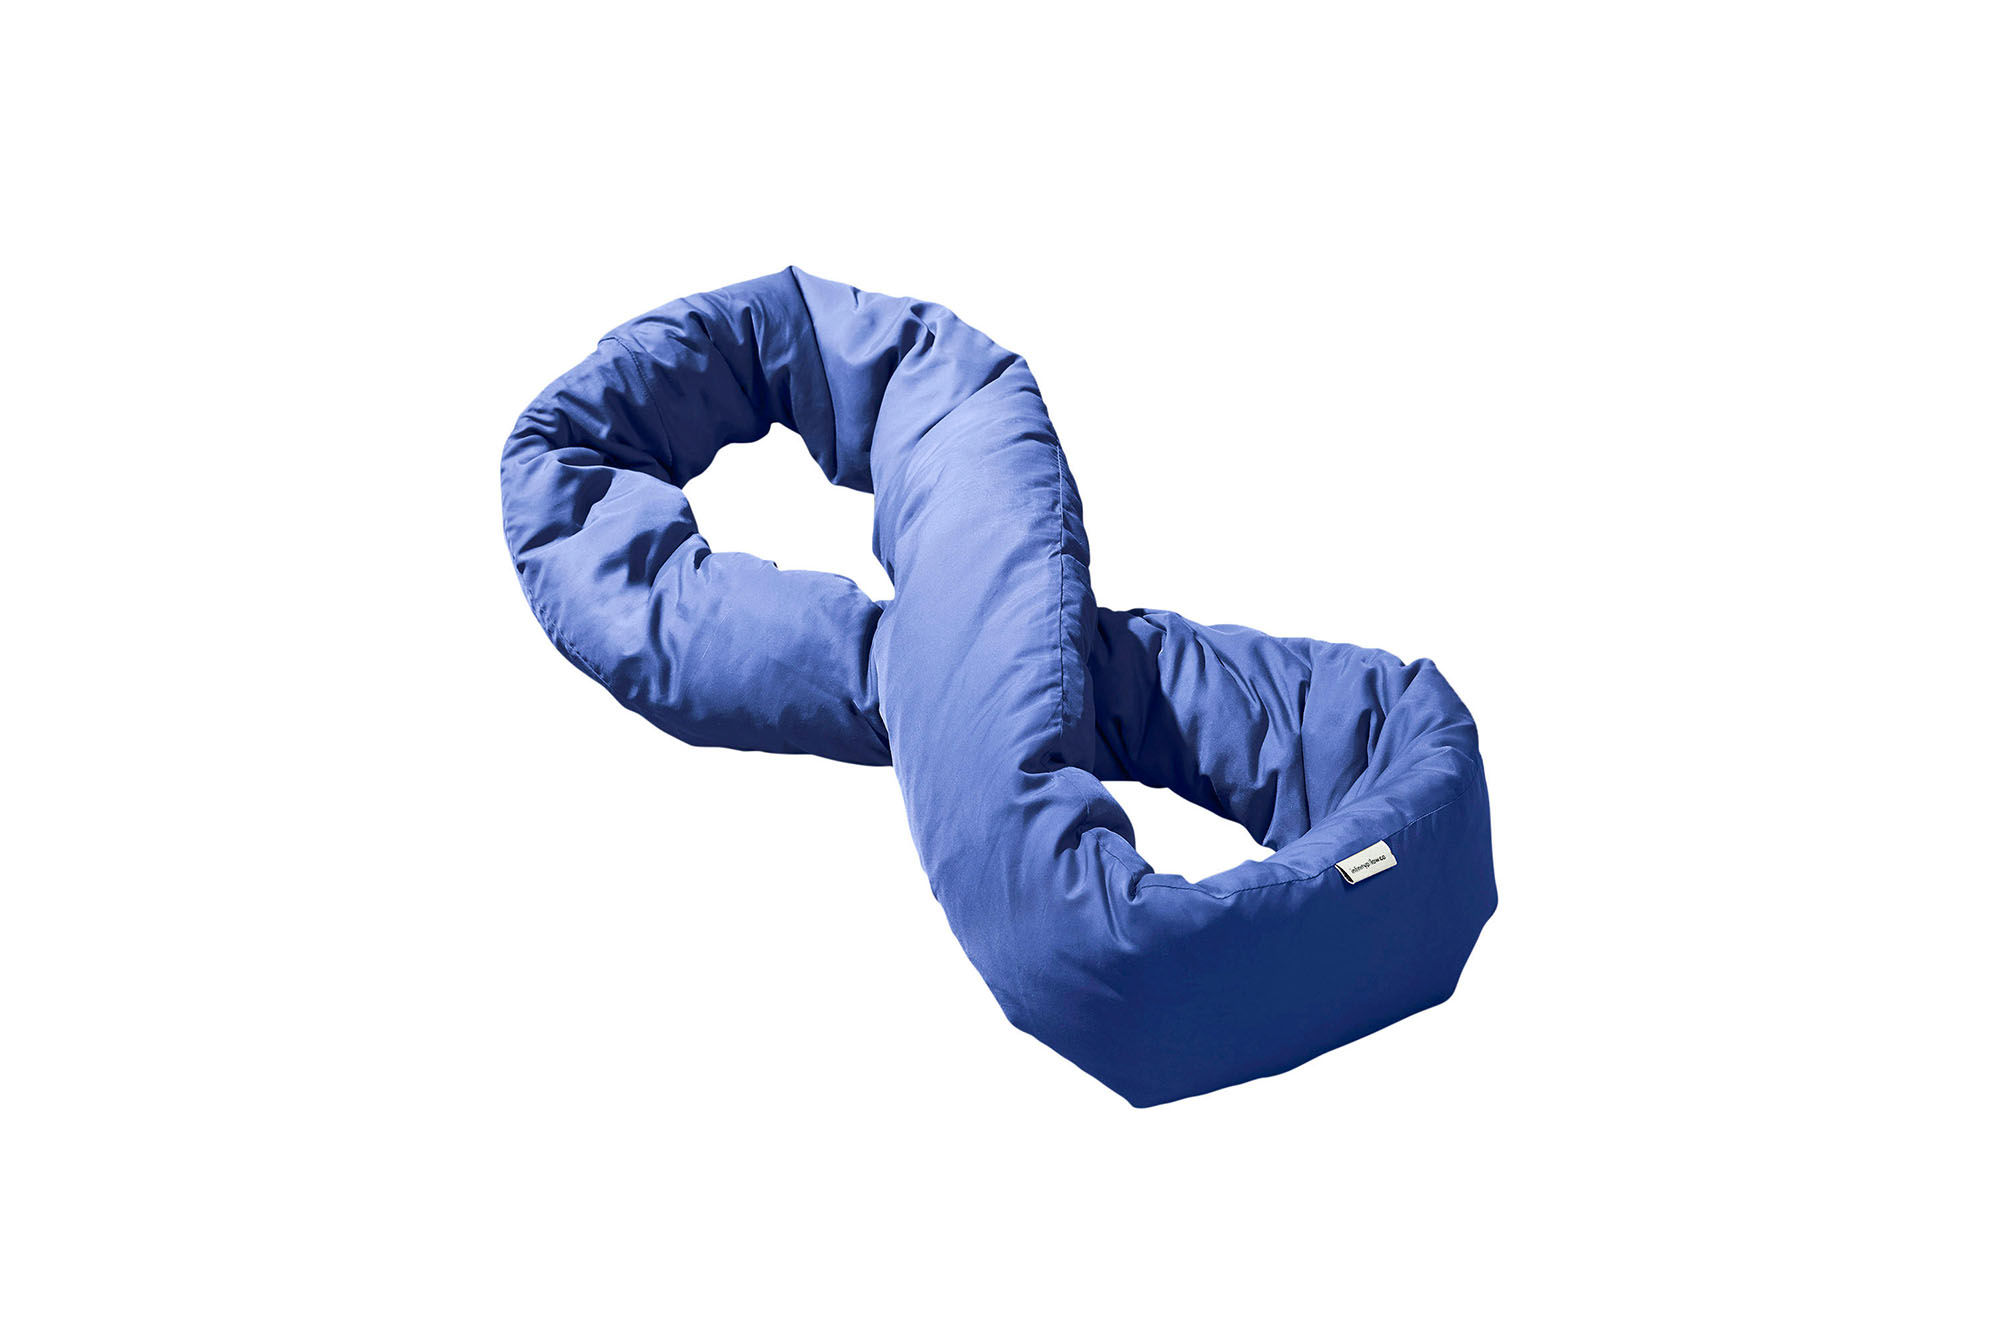 BEST TRAVEL PILLOW: Infinity Pillow